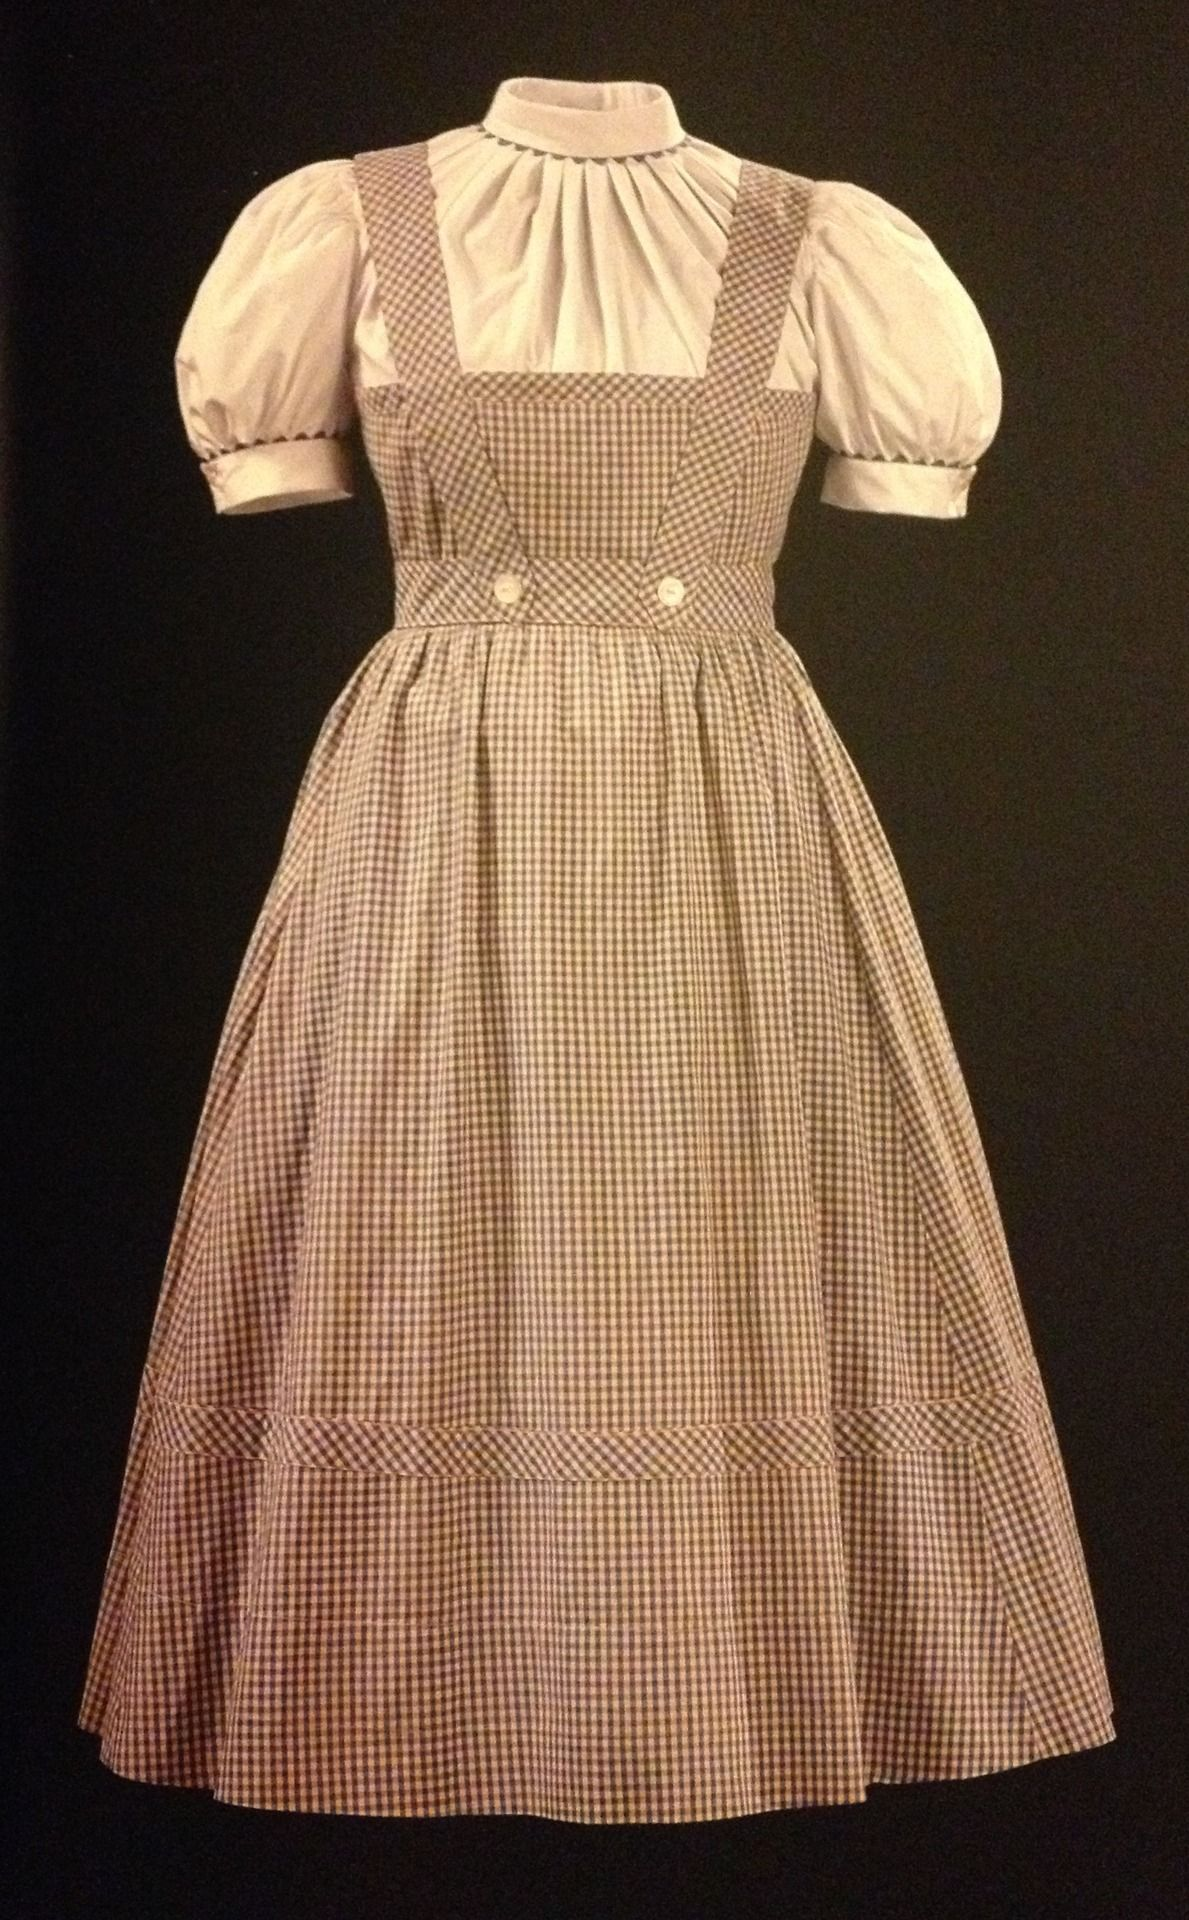 Dorothy -the Original worn by Judy Garland in the Wizard ...